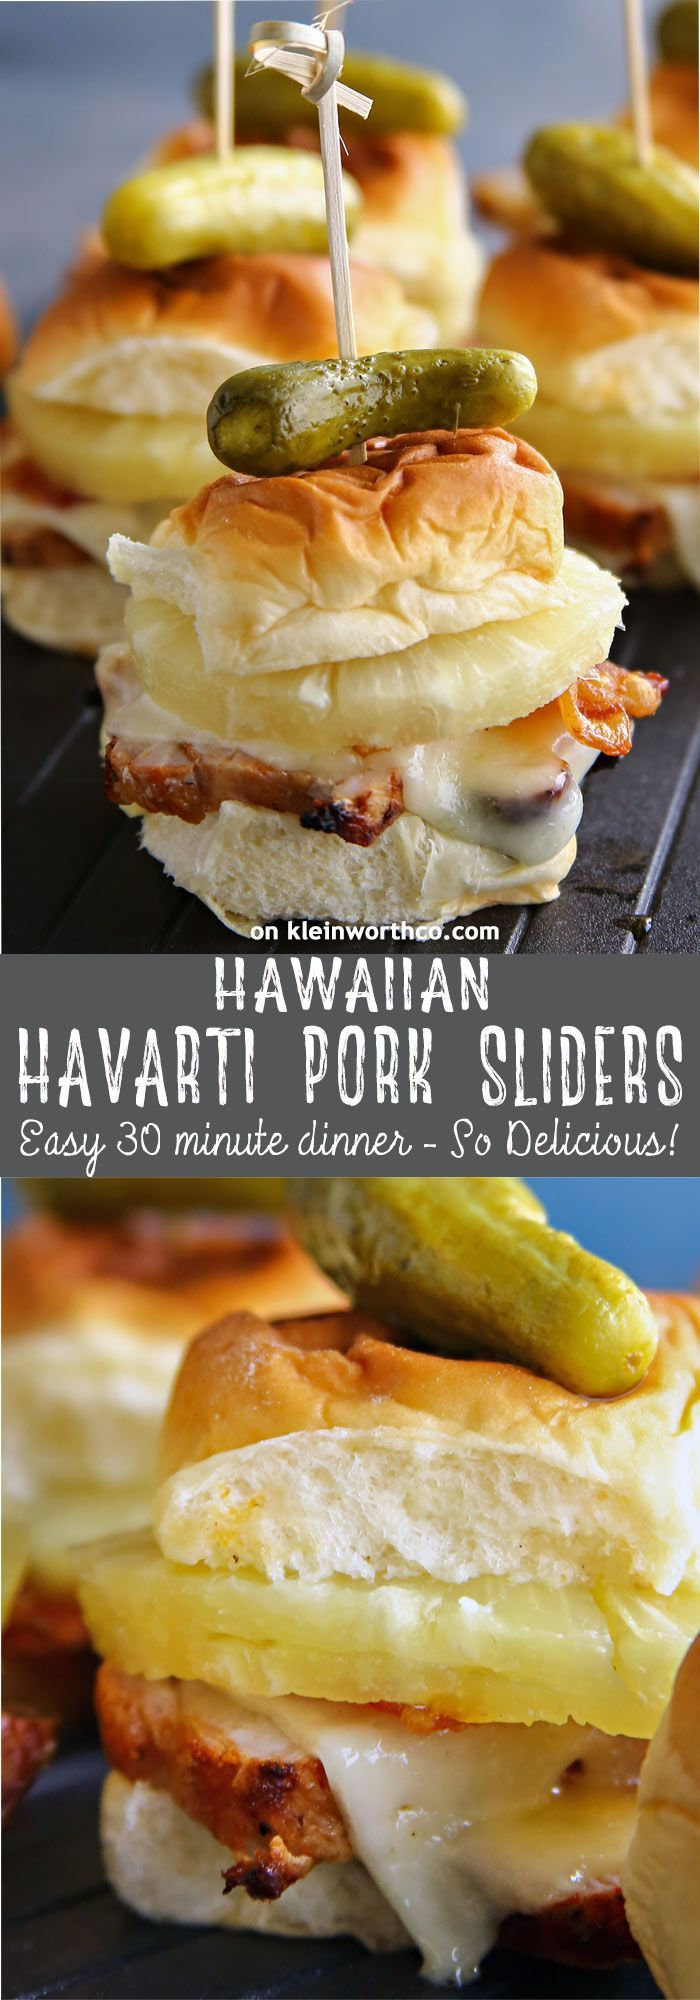 Hawaiian Havarti Pork Sliders, an easy family dinner idea that takes just 30 minutes. You can't go wrong with fun party food like this for dinner. YUM! #ad #RealFlavorRealFast @SmithfieldBrand